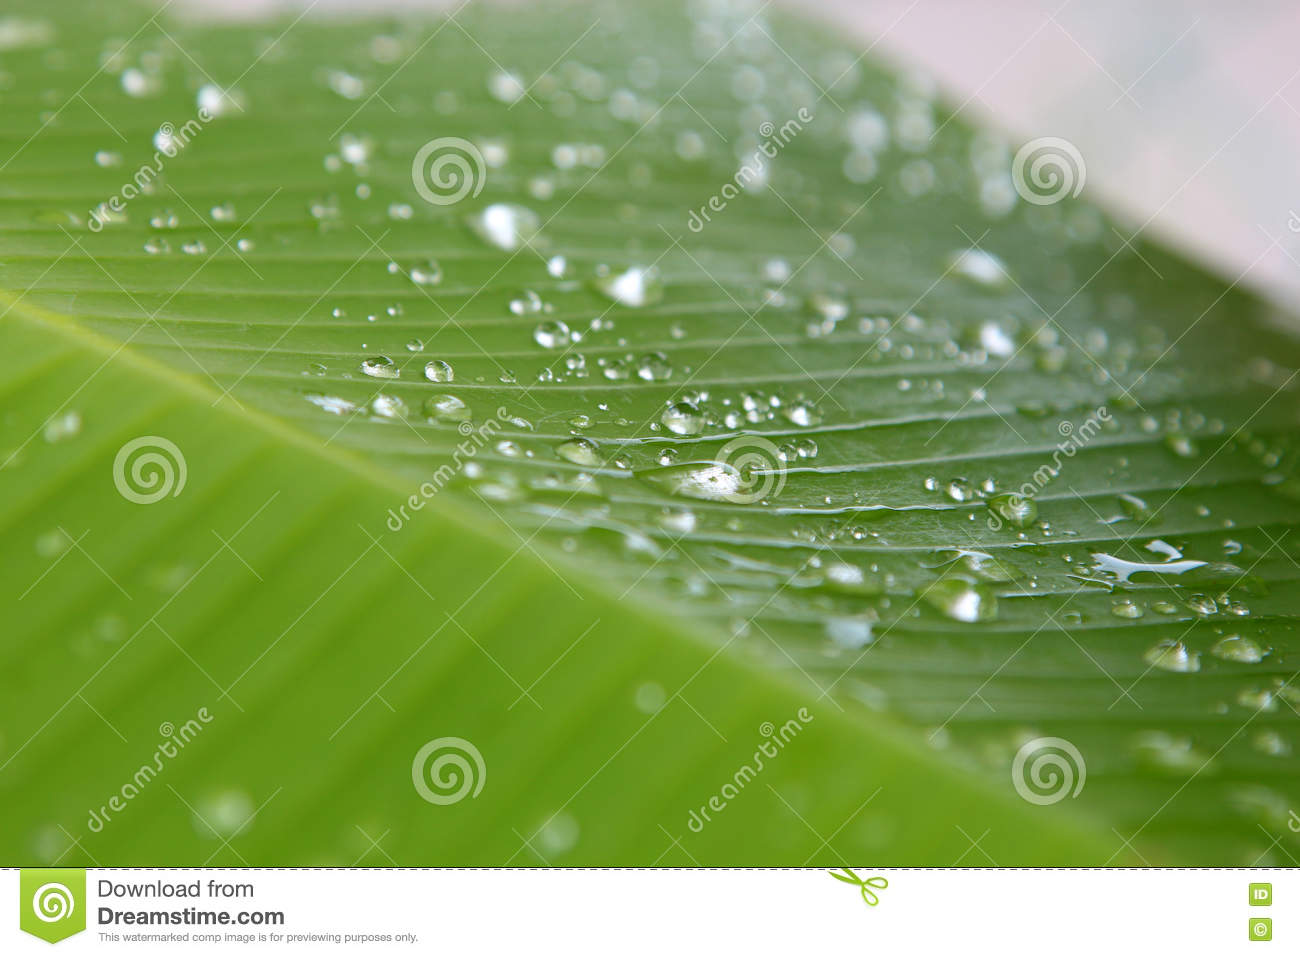 Musa sp. Banana Leaf with water droplet drop dew